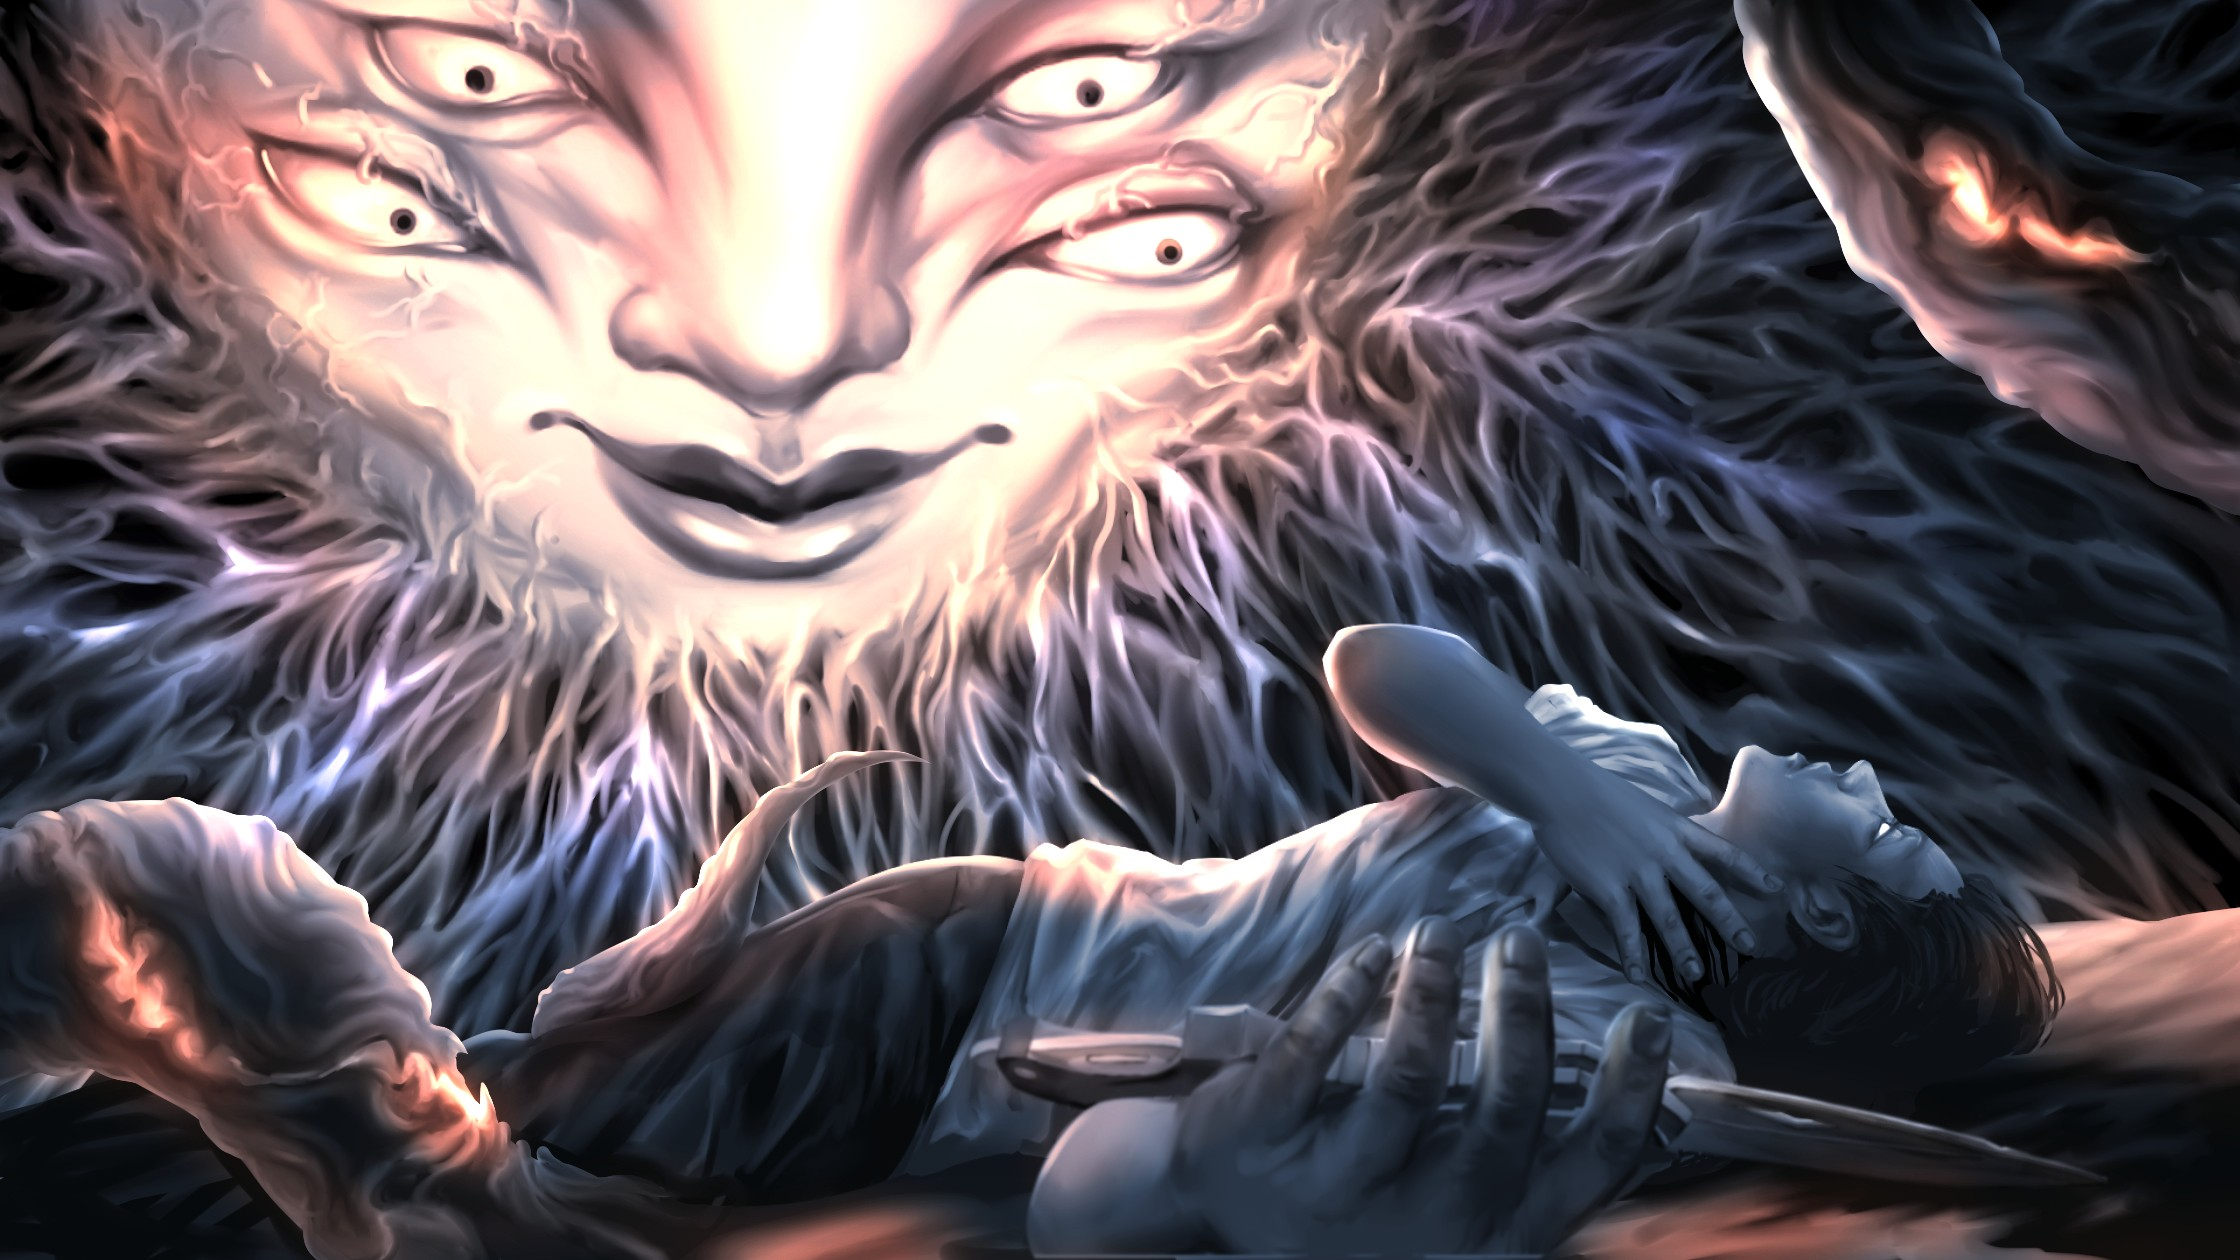 A man is laying on the ground. He is holding a knife with his left hand and covering his throat with his right hand. There is a shining large face in the sky with four eyes. There are also some tentacles around the page.